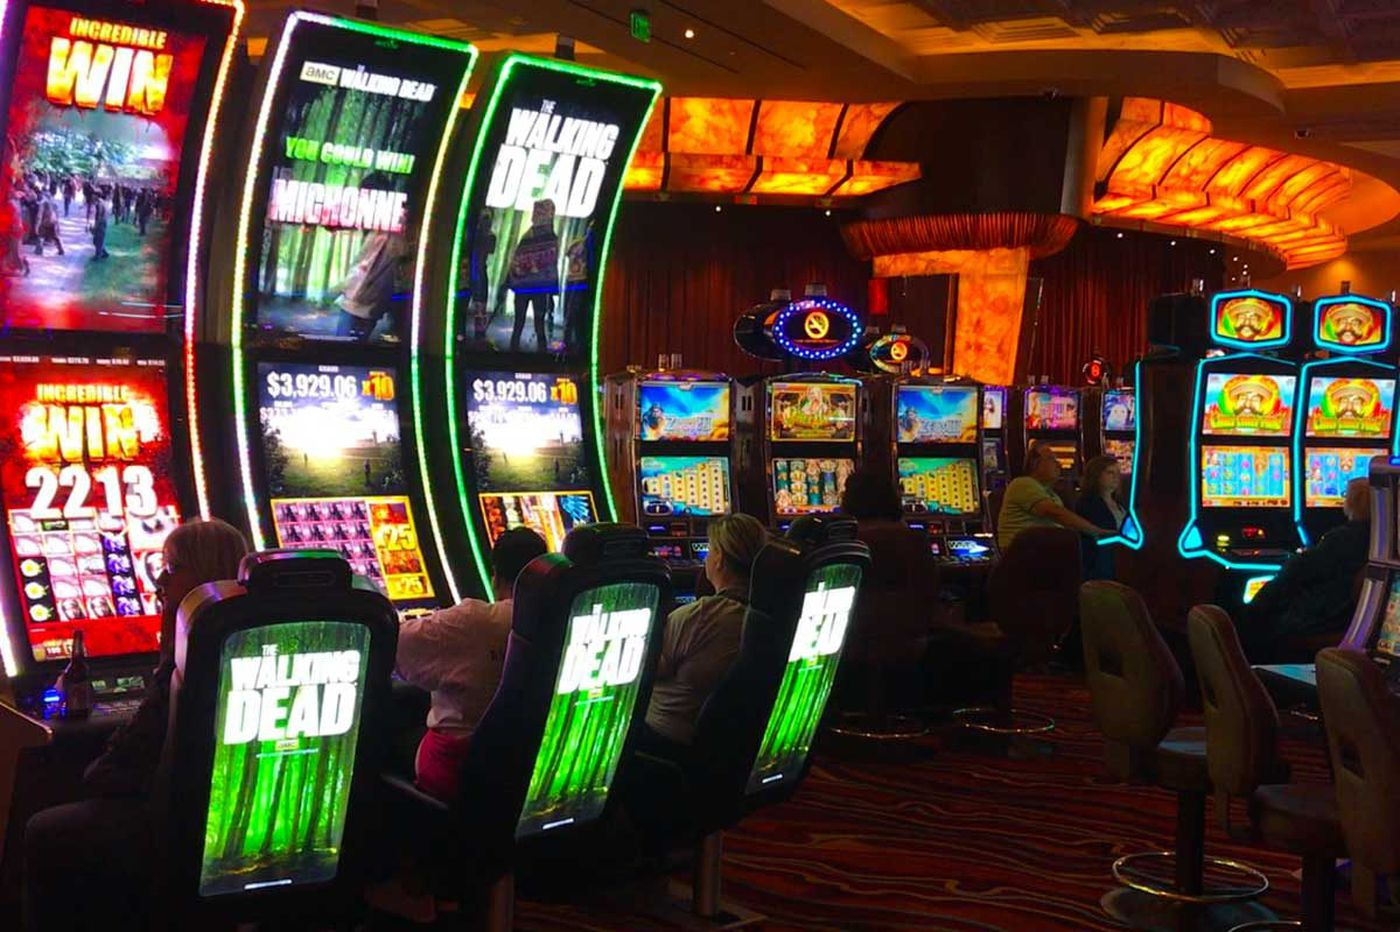 Expanding Parx casino holding job fair to fill 200 positions